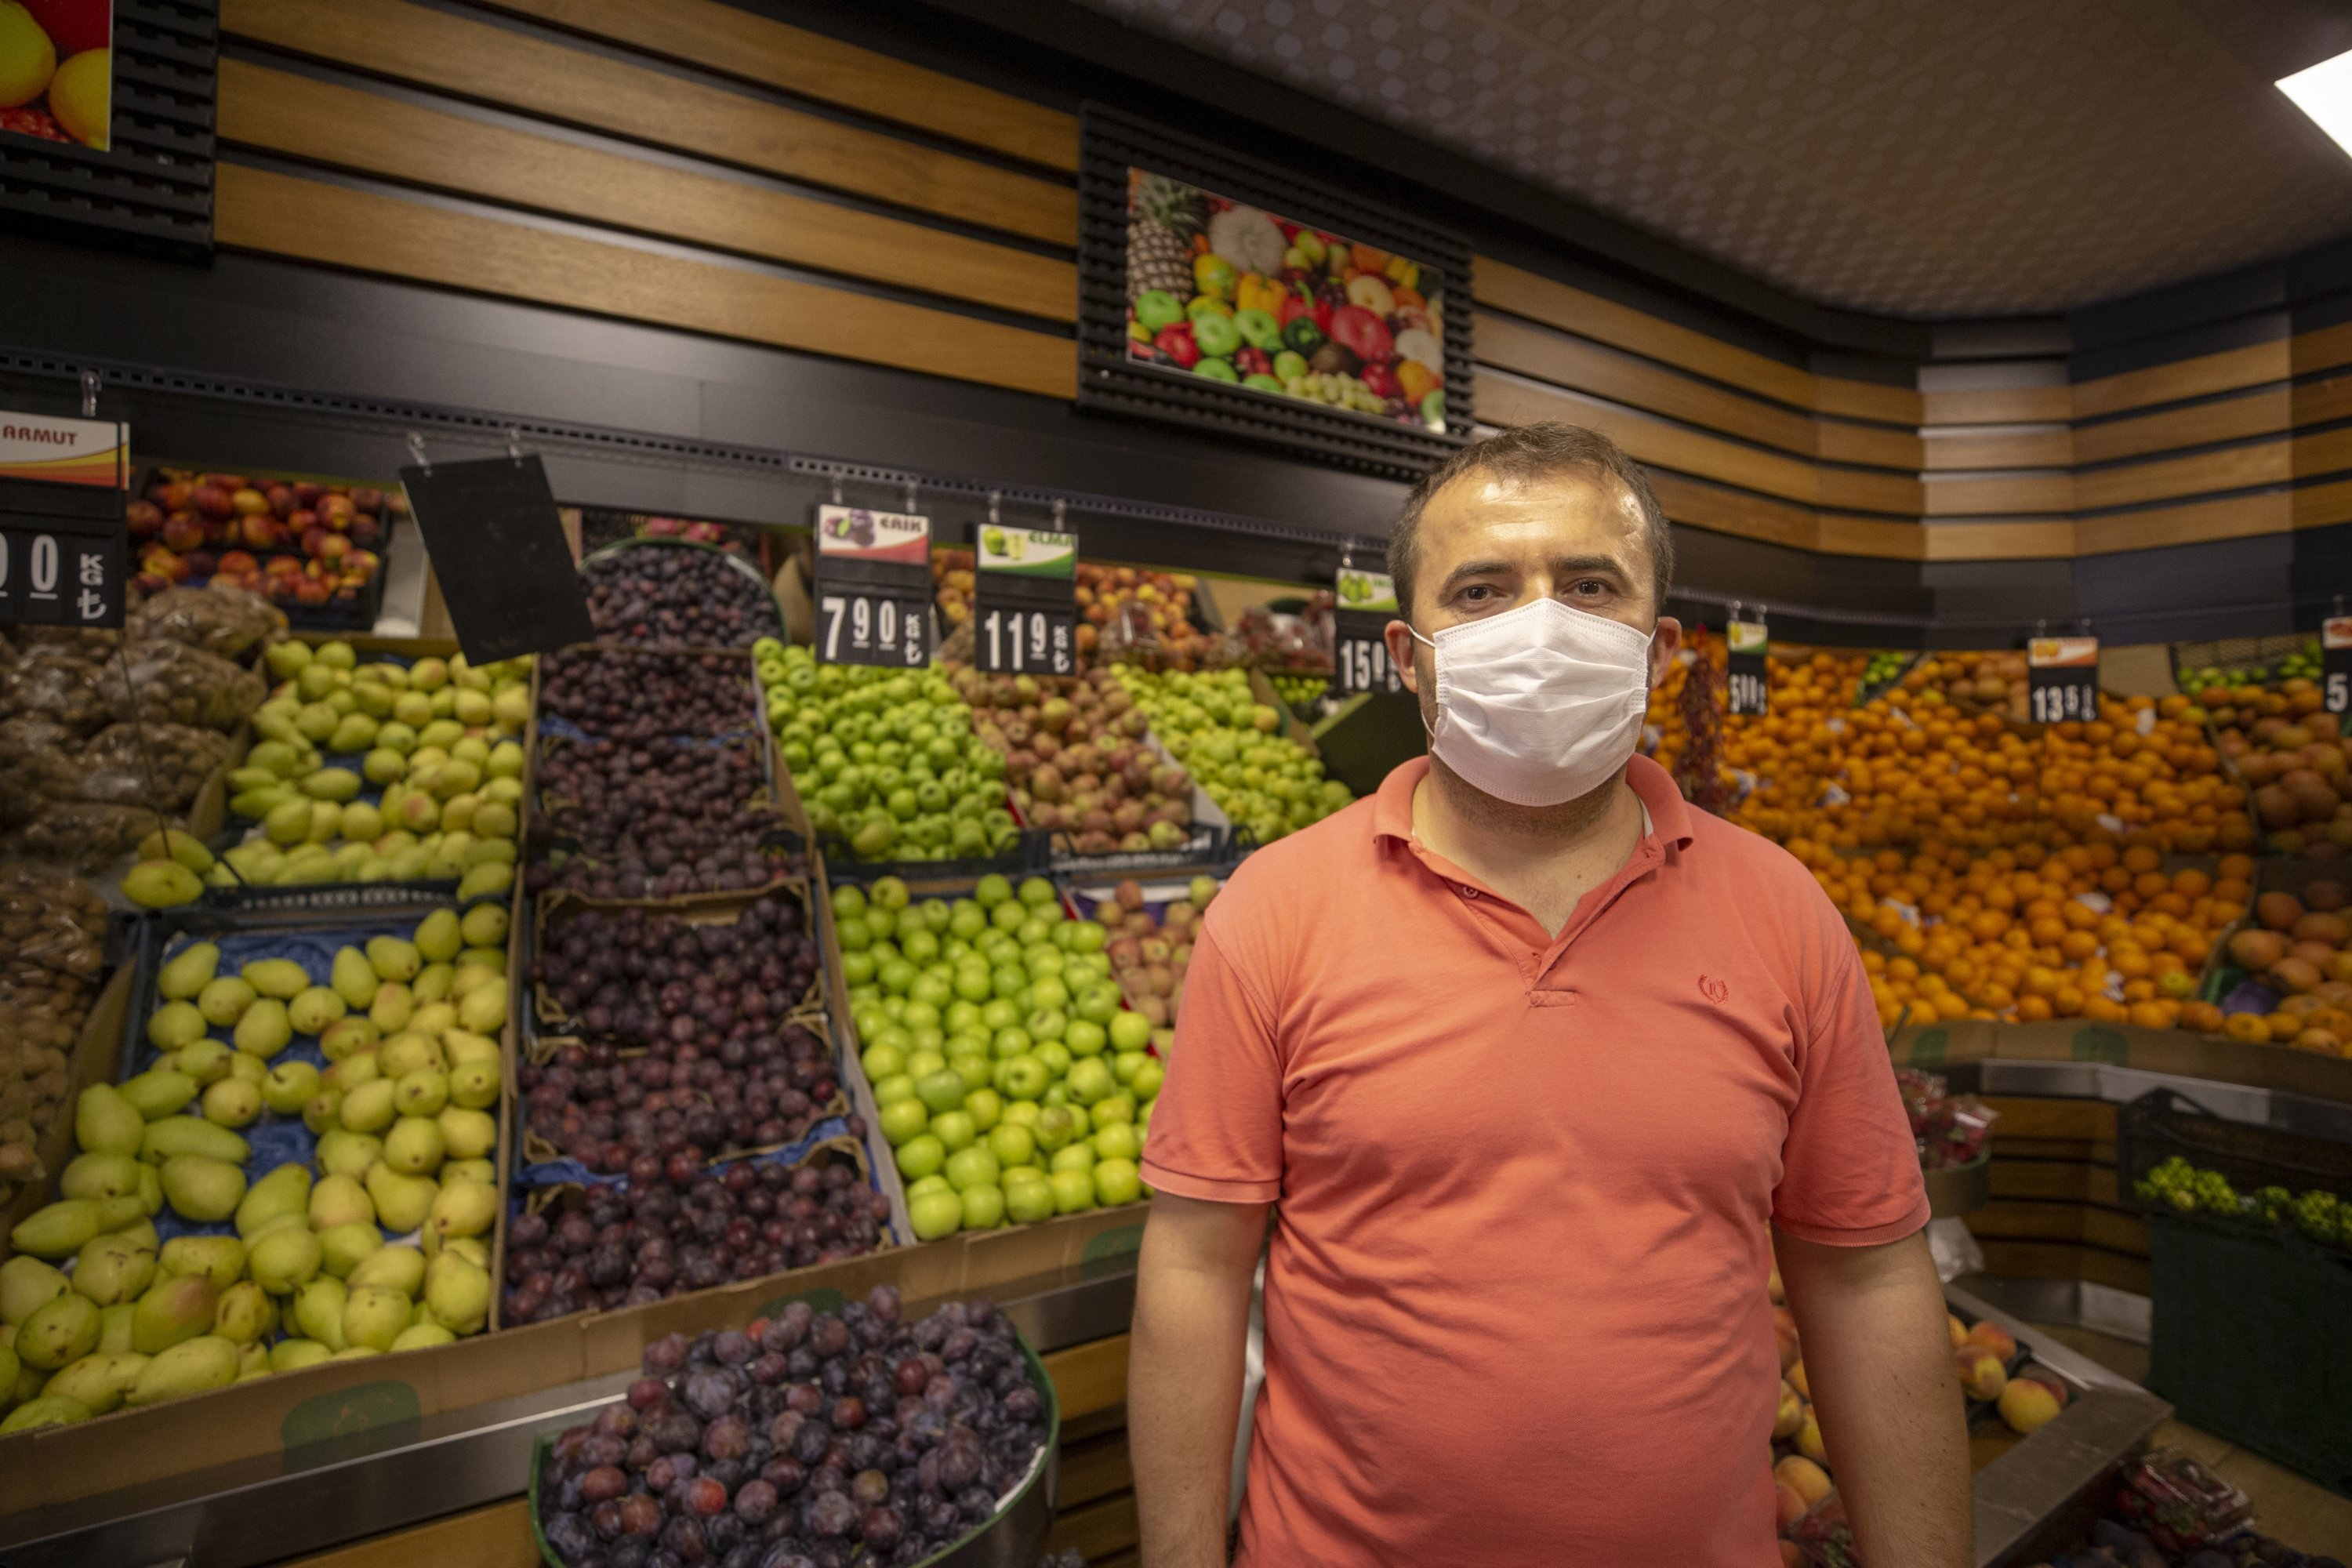 Greengrocer Hüseyin Uçar stands in front of his produce, in Kaş, Antalya province, southern Turkey, Sept. 18, 2020. (AA Photo)